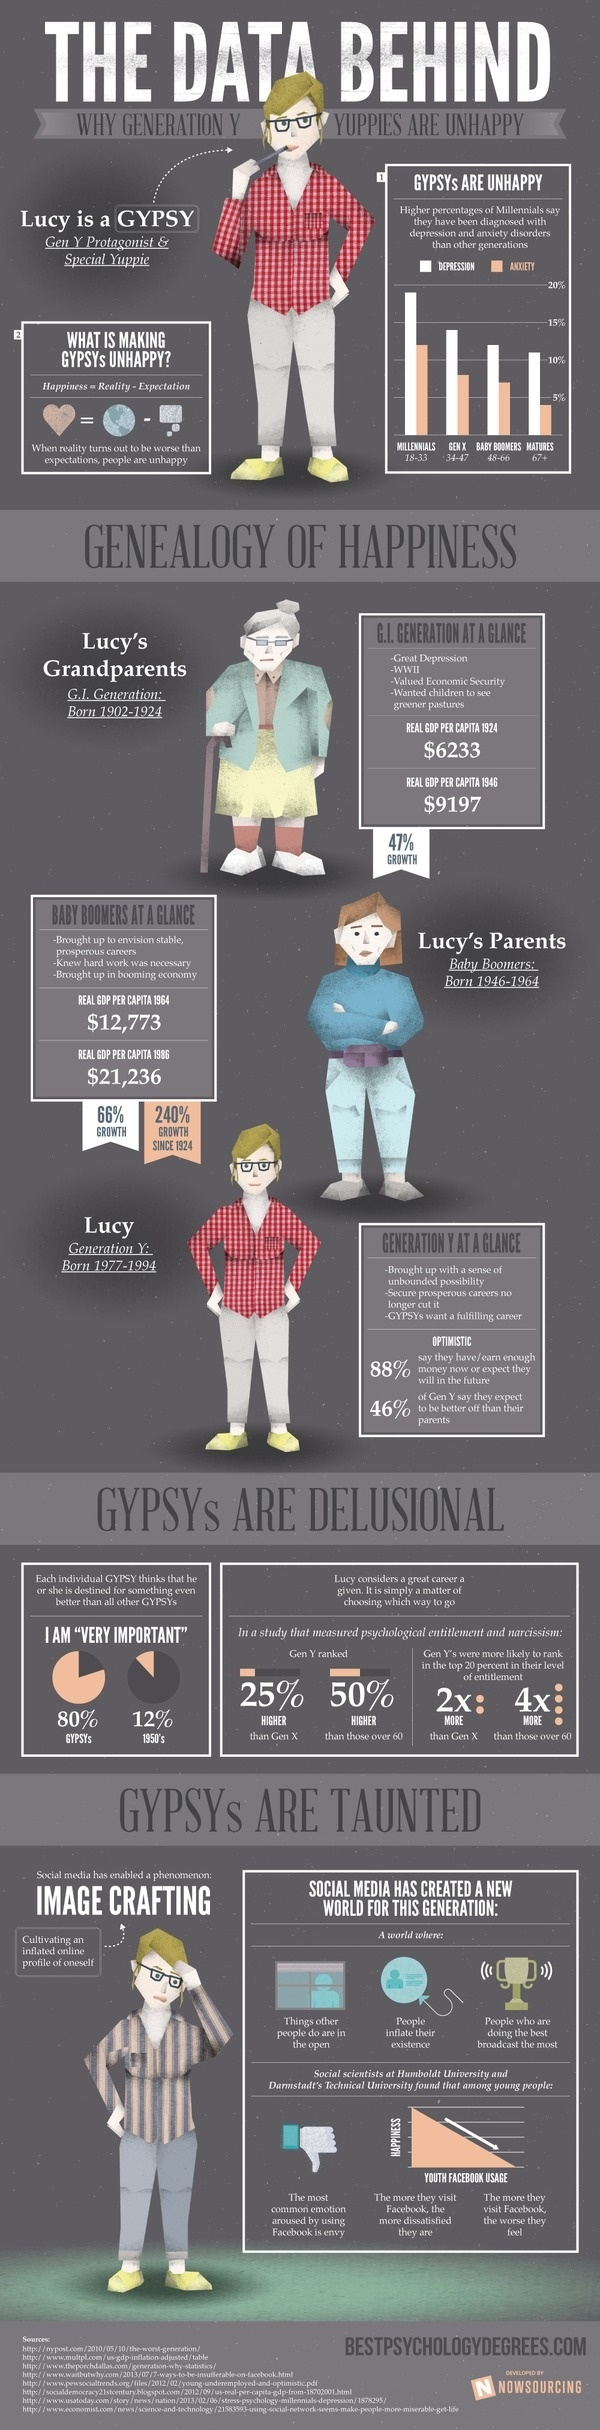 The Data Behind Why Gen Y Yuppies Are Unhappy #y #infographic #people #gen #boomers #x #media #baby #social